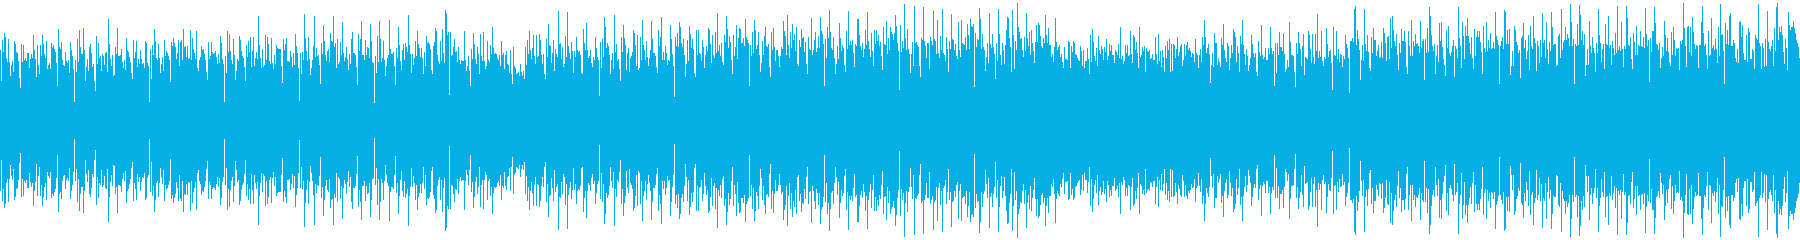 Refreshing, transparent, beginning, acoustic guitar AD21's reproduced waveform